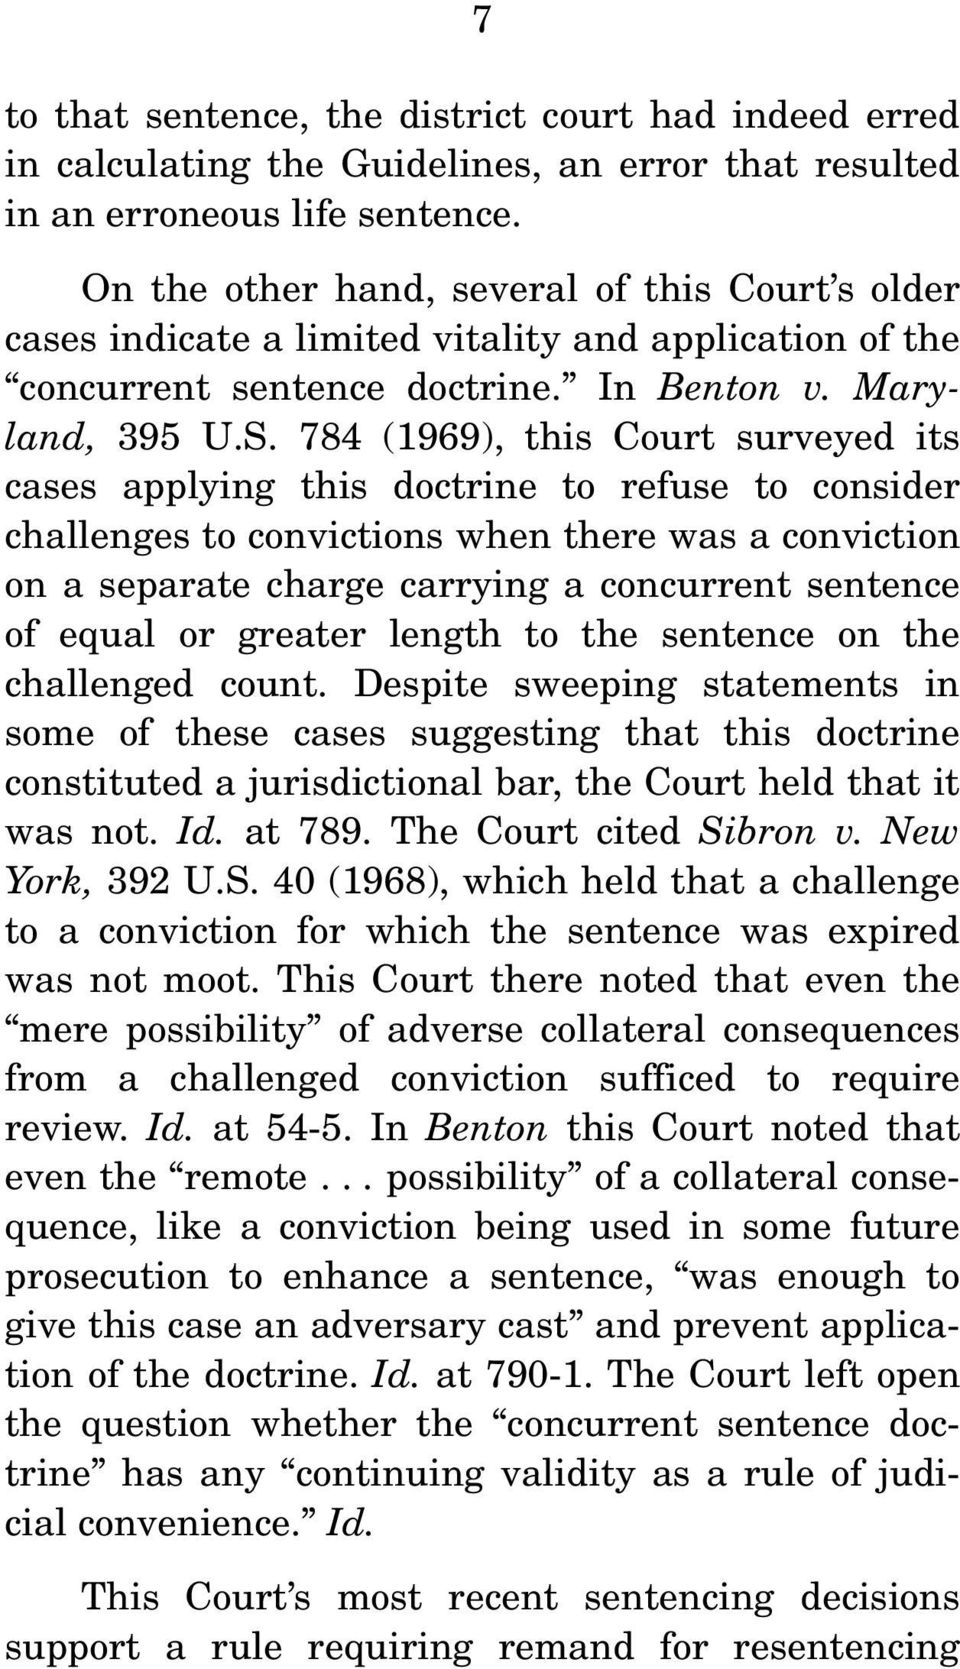 784 (1969), this Court surveyed its cases applying this doctrine to refuse to consider challenges to convictions when there was a conviction on a separate charge carrying a concurrent sentence of